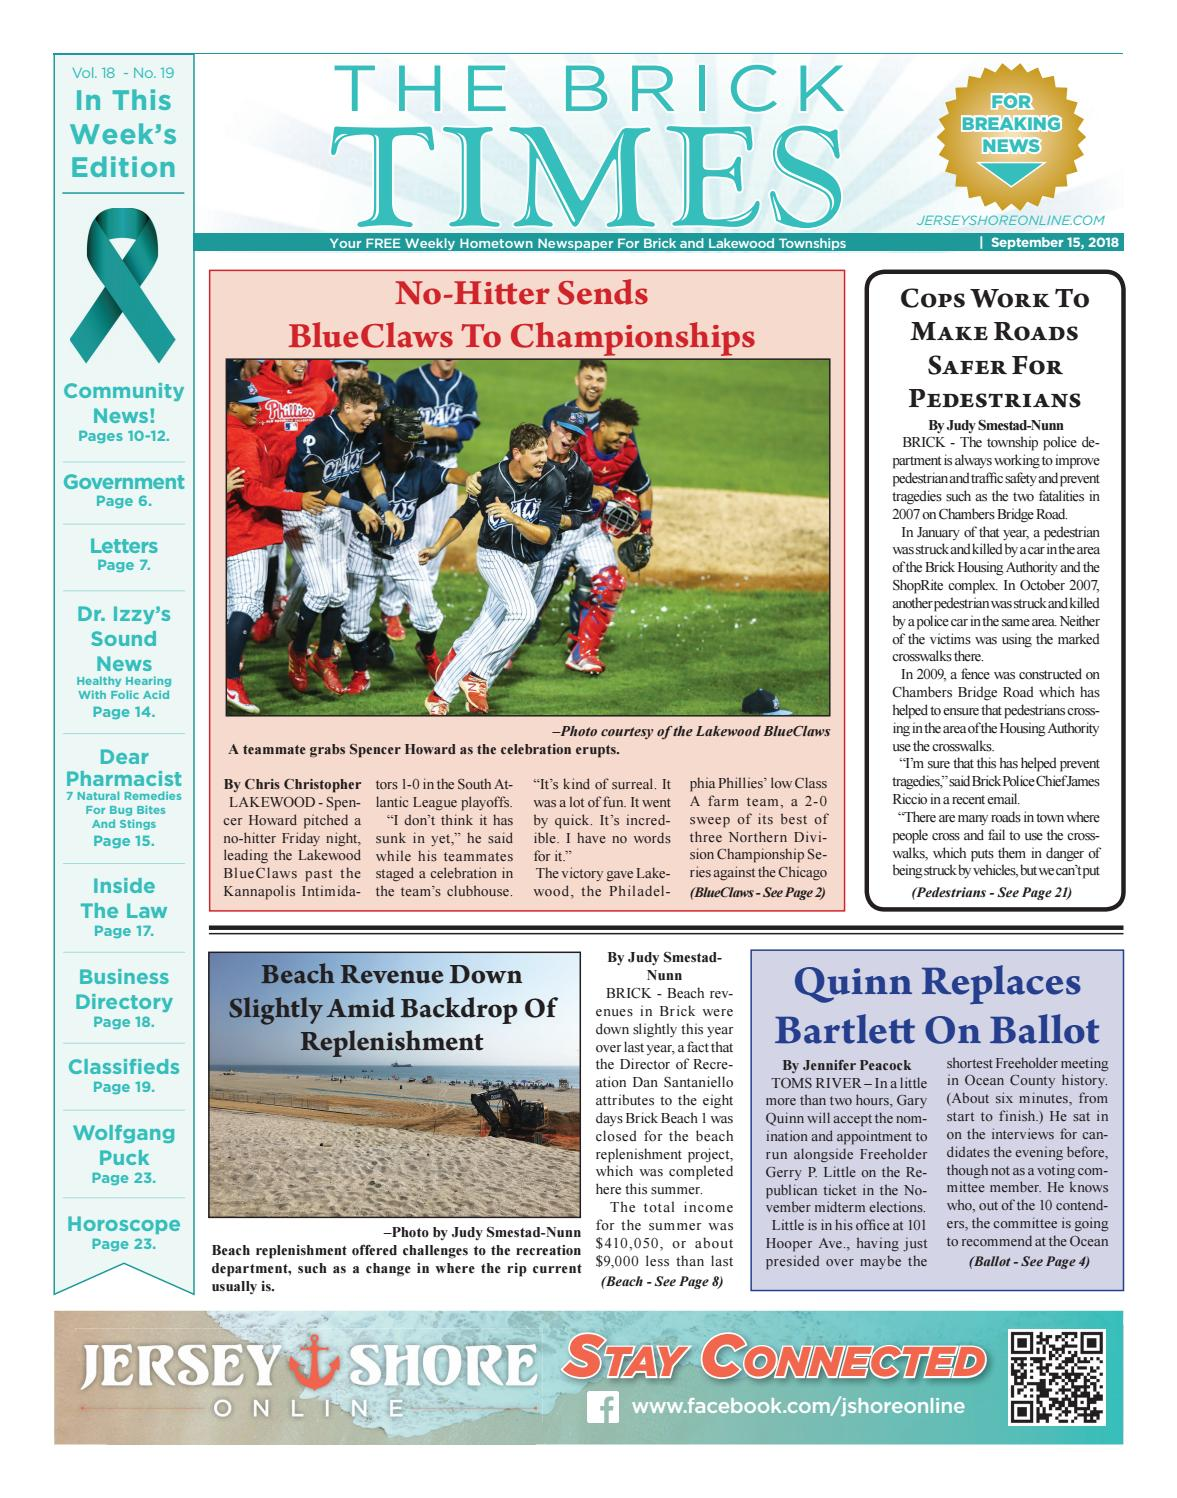 1d29f41c492 2018-09-15 - The Brick Times by Micromedia Publications Jersey Shore Online  - issuu